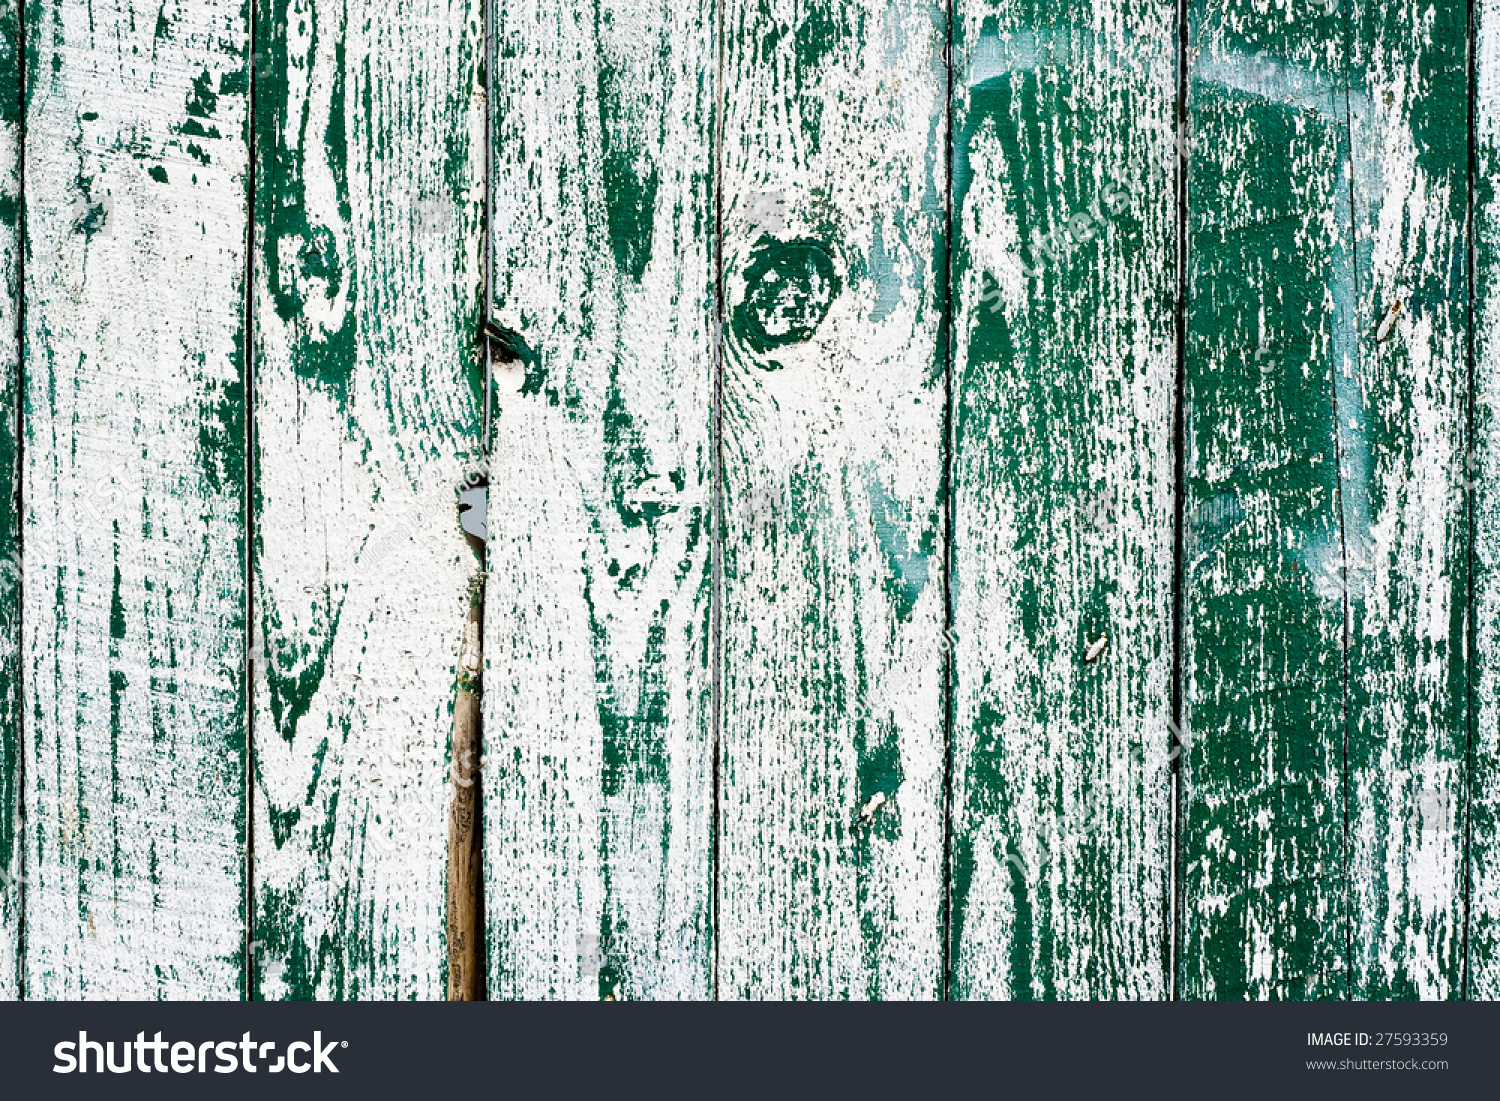 A Nice Wood Texture For Background Image Stock Photo